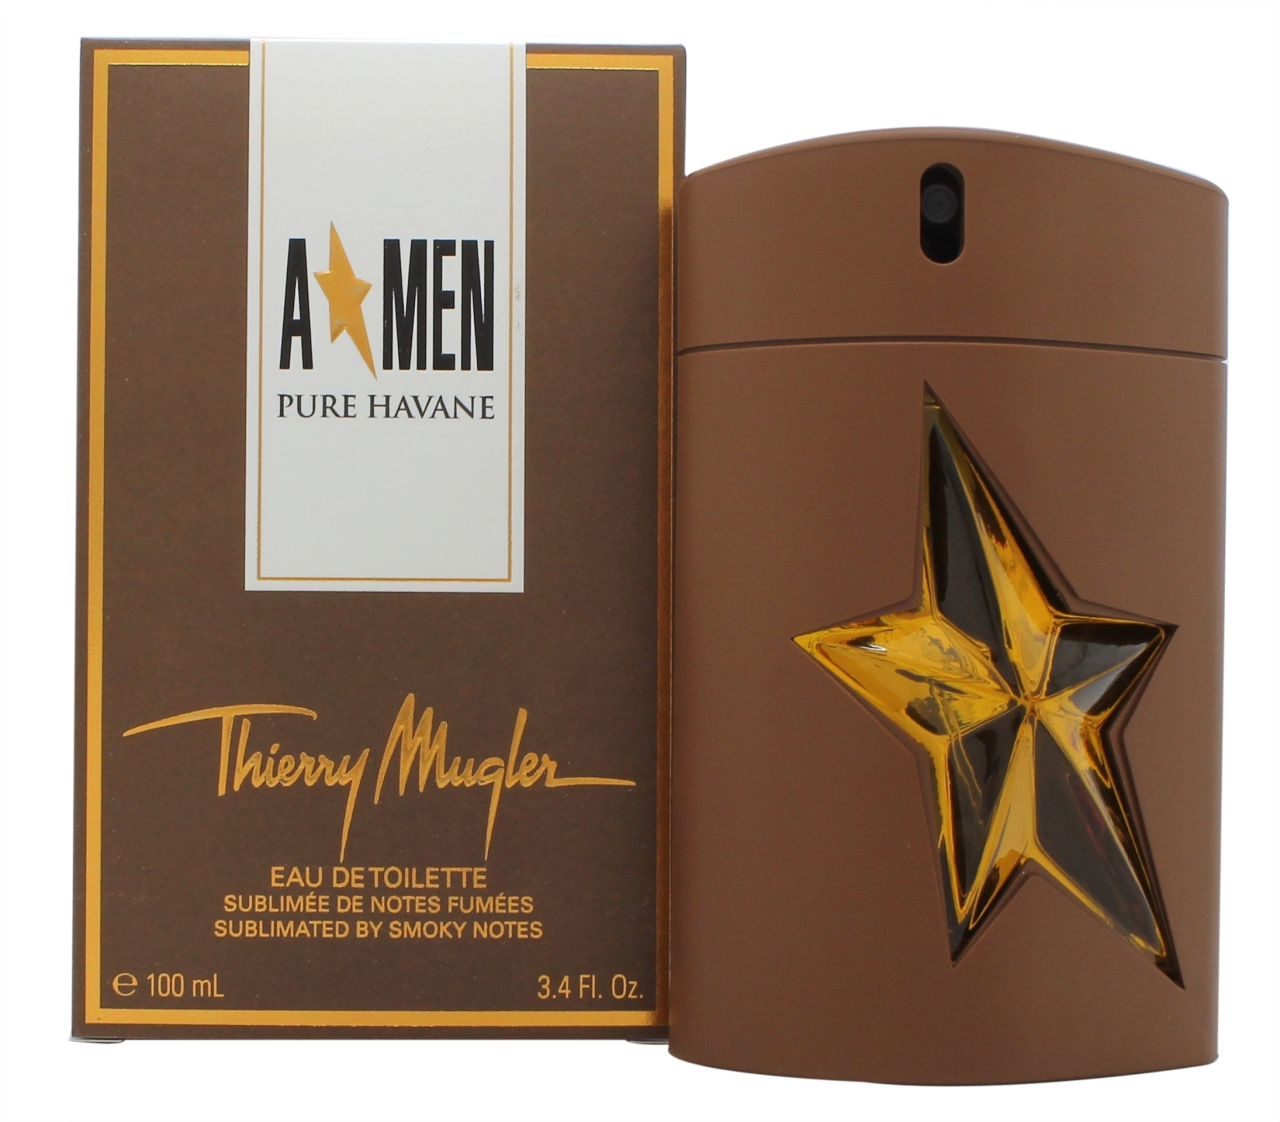 Туалетная вода Thierry Mugler A Men Pure Havane 100ml фото